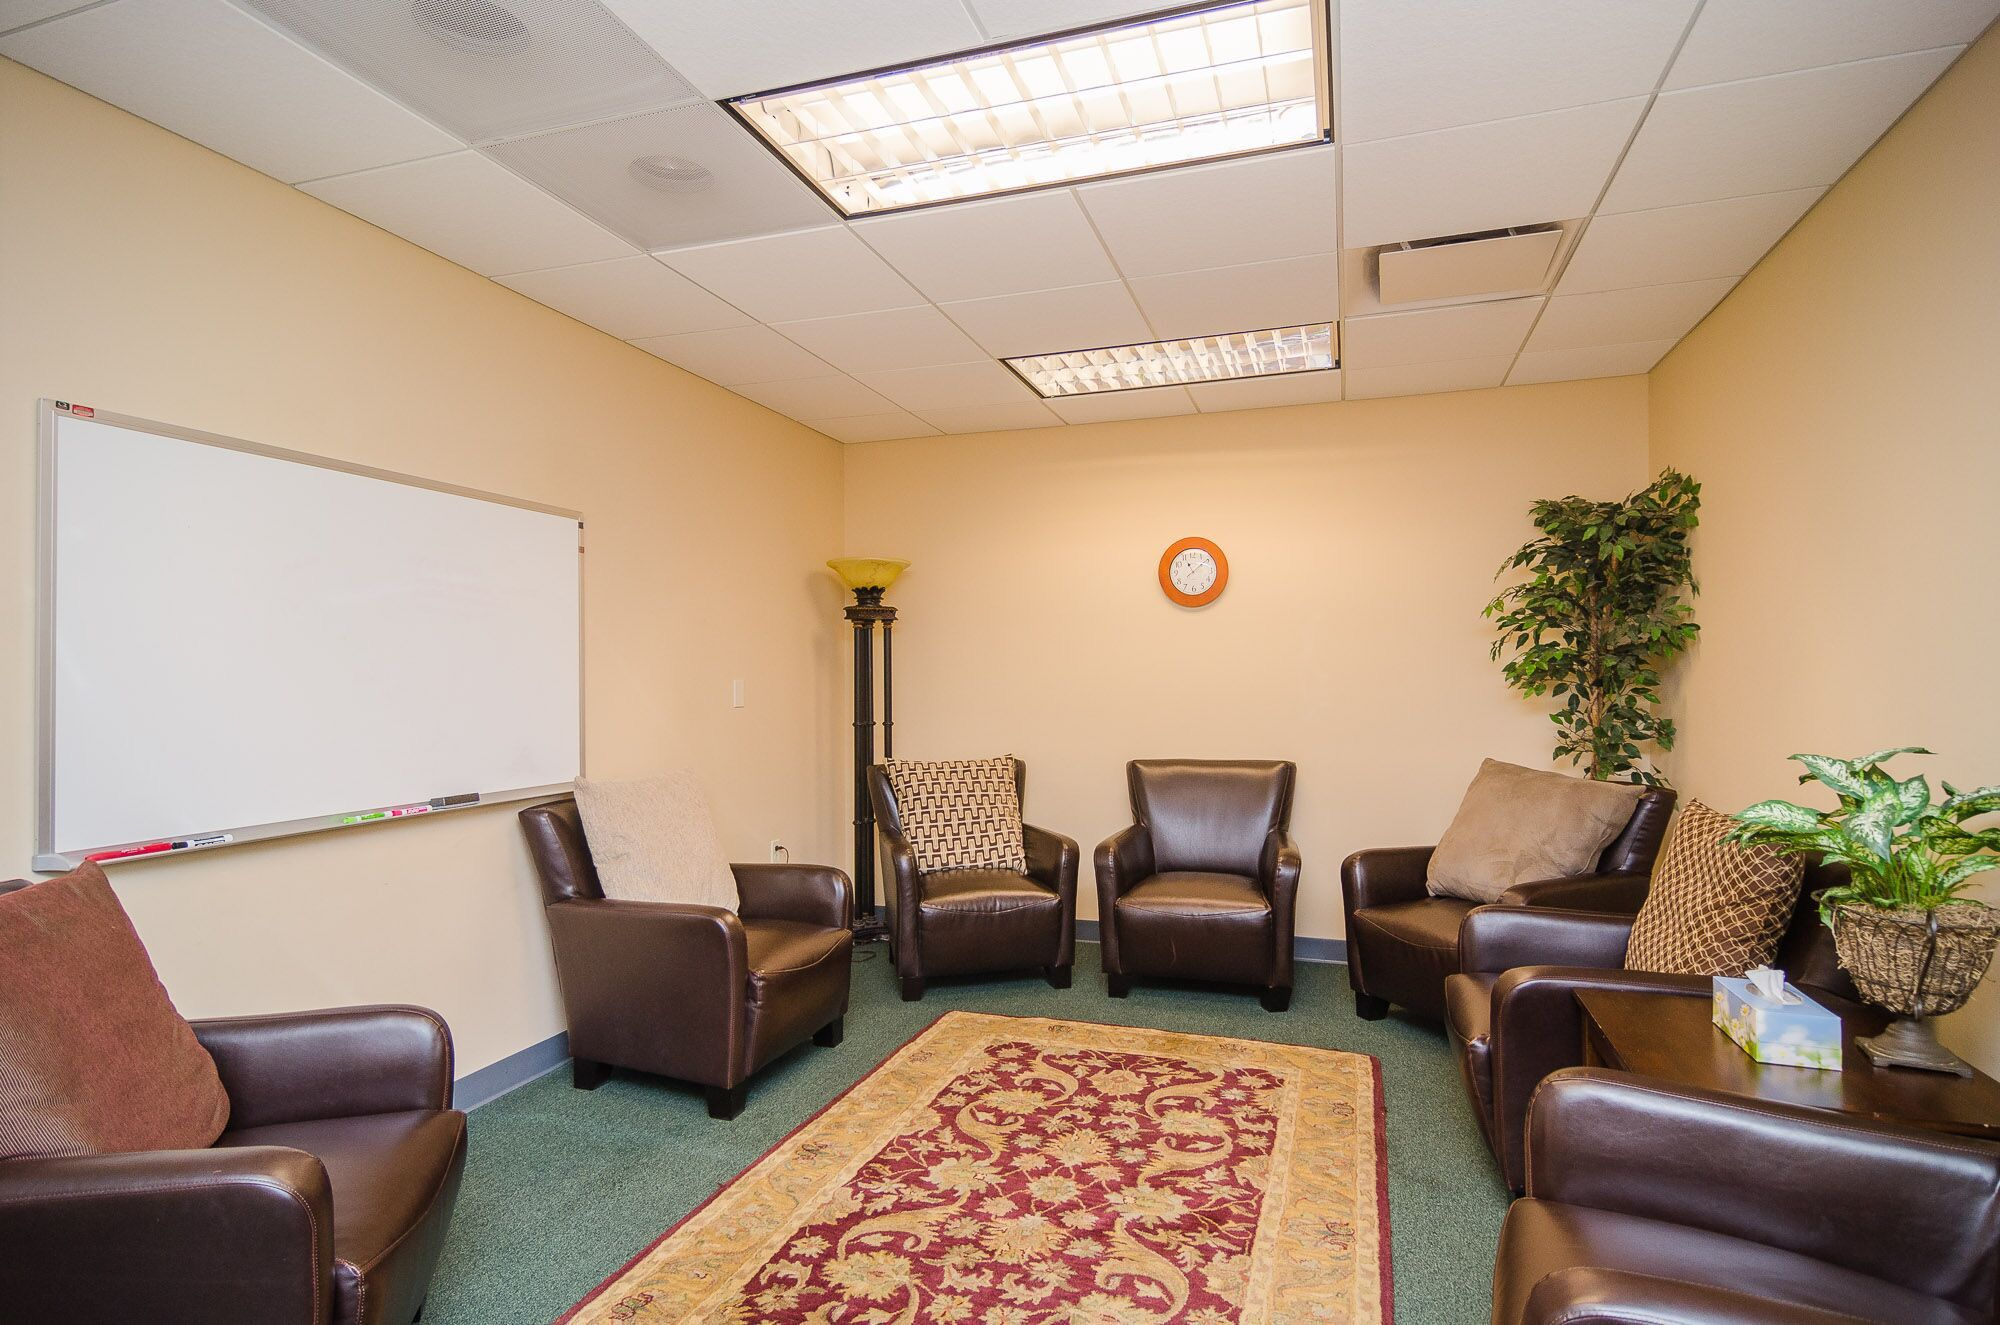 Traverse City Clinic meeting room